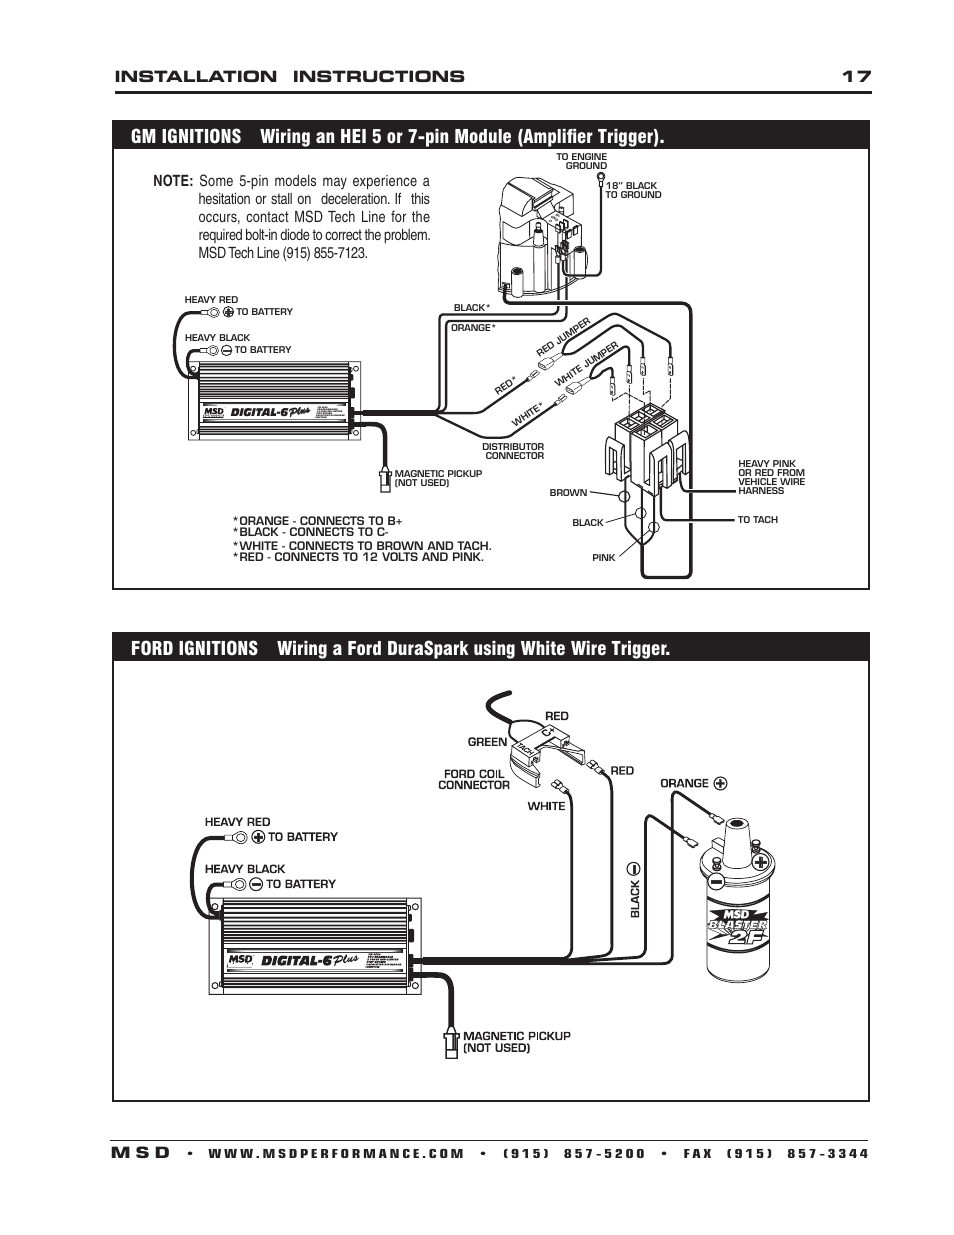 WRG-7679] Ford Duraspark To Msd Ignition Wiring Diagram on